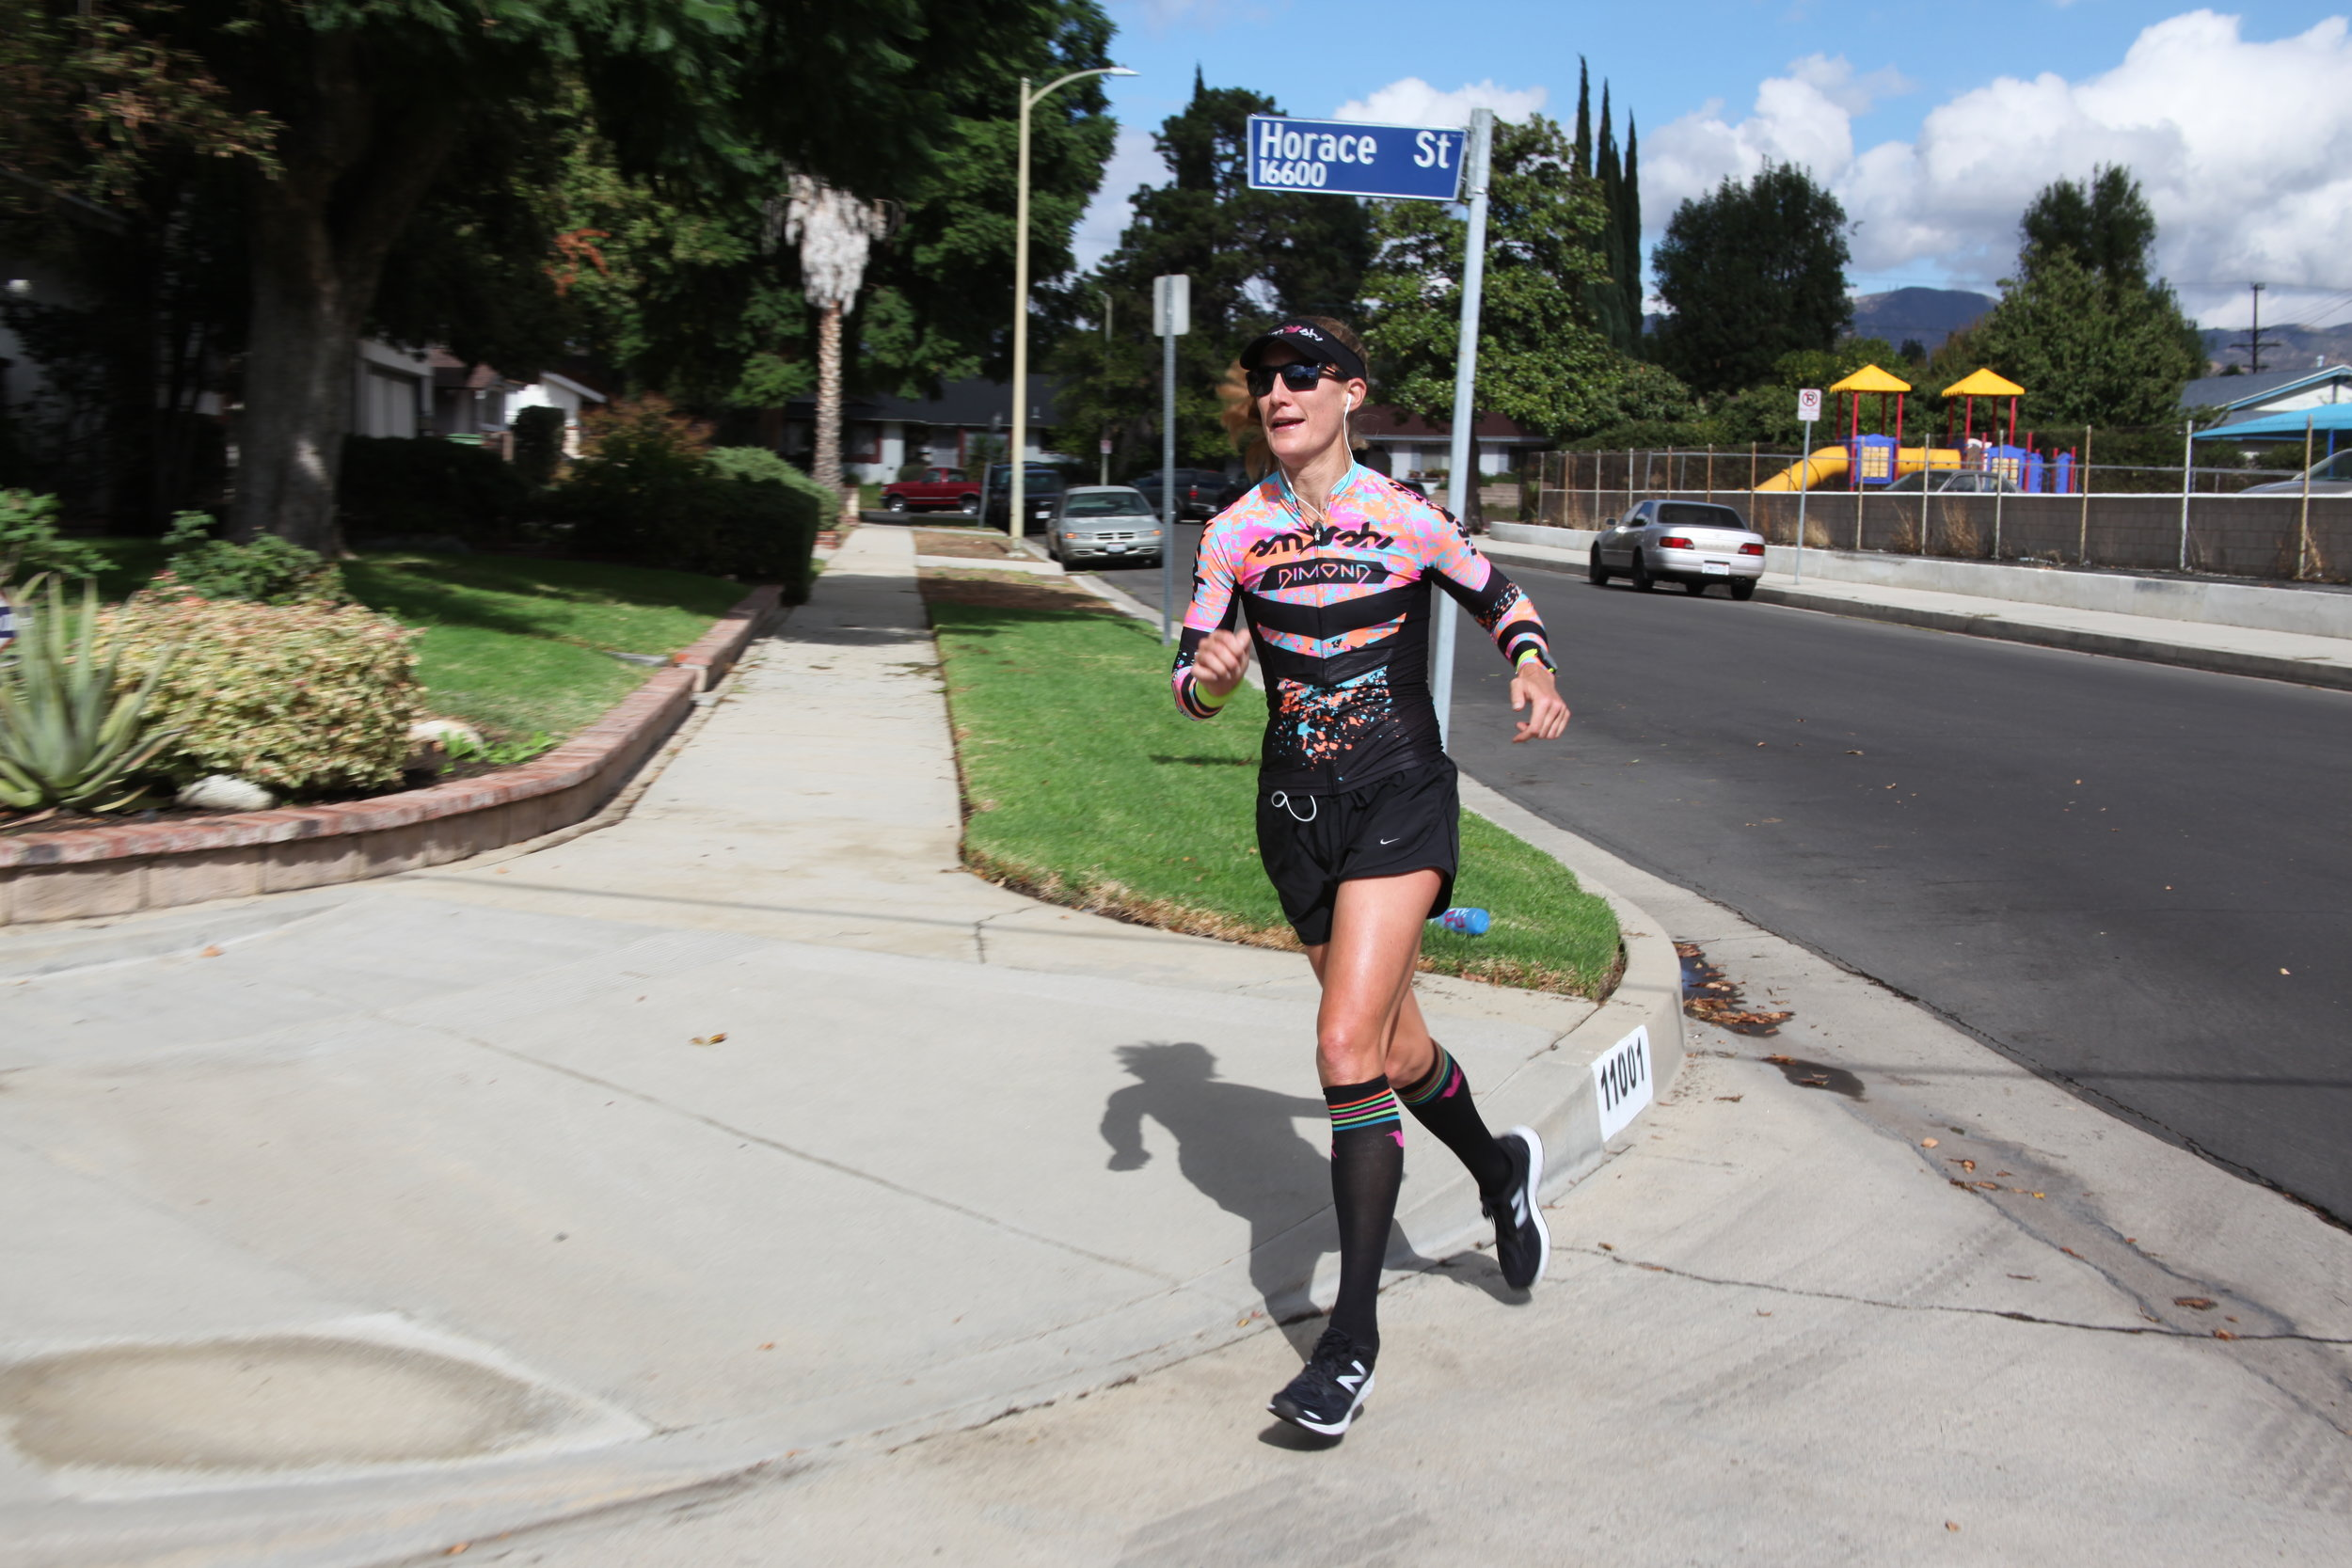 """Rounding the corner and enjoying the last mile """"hand's free"""" after a quick bottle toss."""